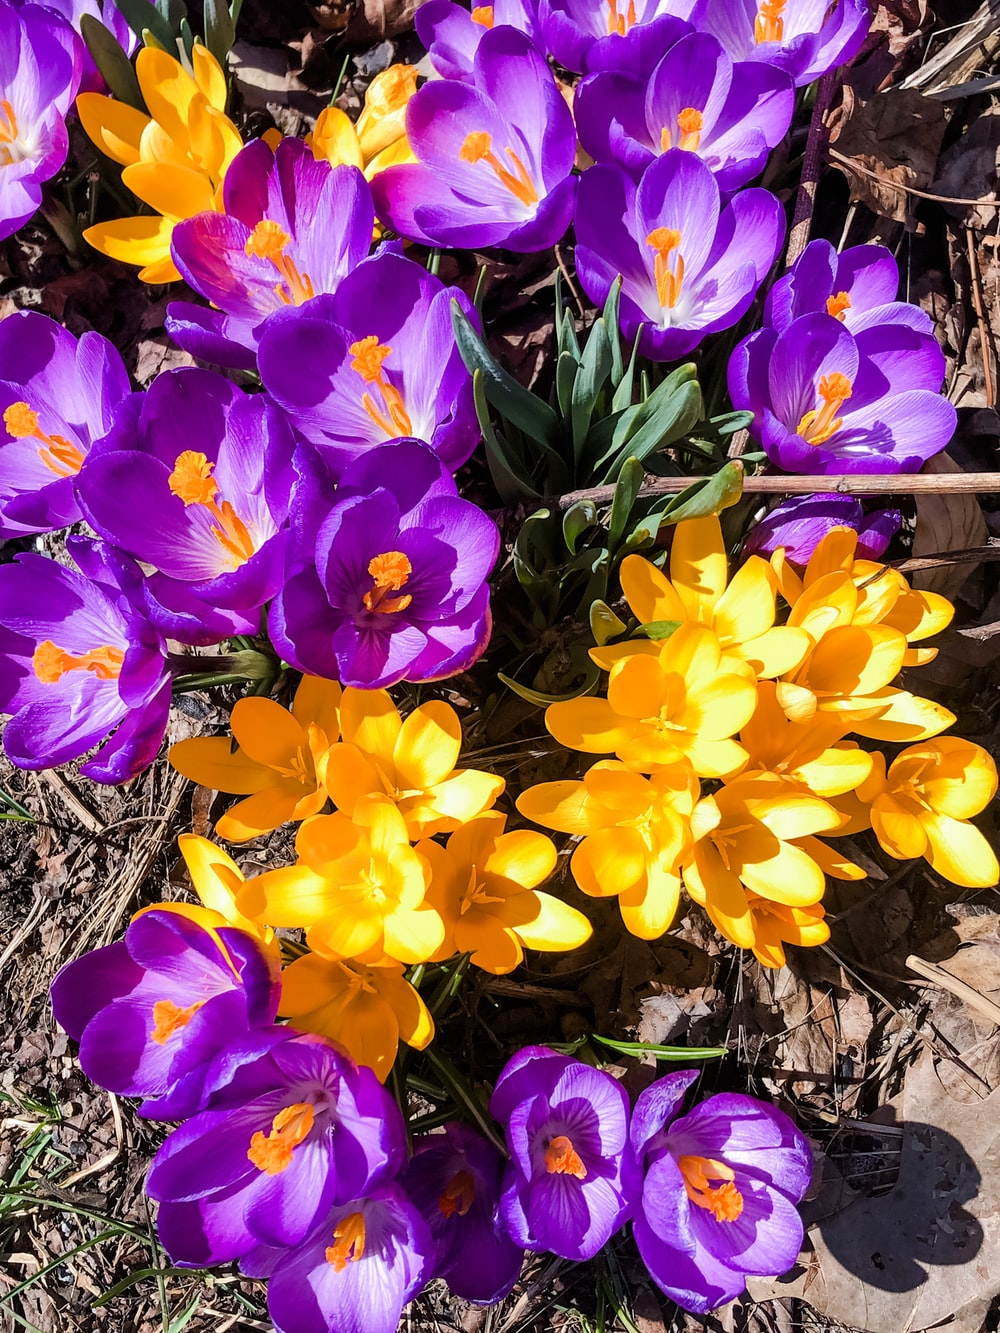 purple and yellow flowers on brown soil